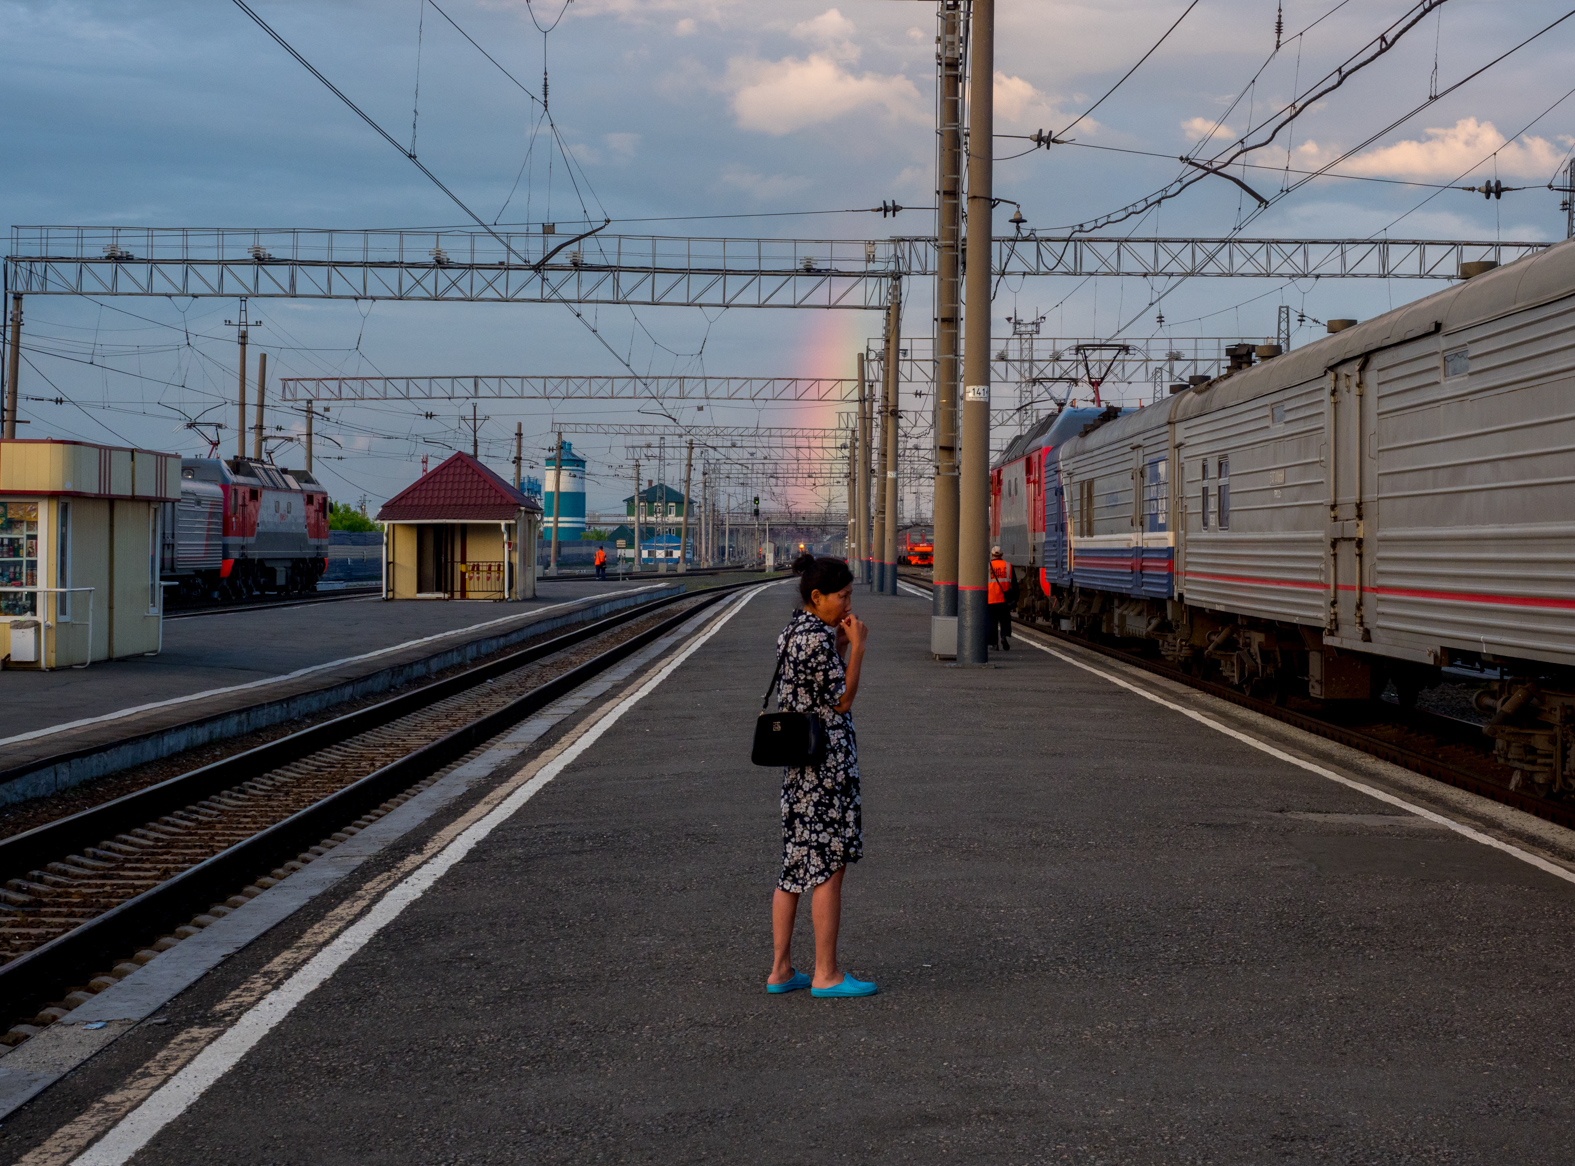 A rainbow arcs over the Trans-Siberian Railway from Moscow-Vladivostok. Spanning a length of 9,289km, it's the longest uninterrupted single country train journey in the world. It has connected Moscow with Vladivostok since 1916, and is still being expanded. It was built between 1891 and 1916 under the supervision of Russian government ministers personally appointed by Tsar Alexander III and his son, the Tsarevich Nicholas (later Tsar Nicholas II).